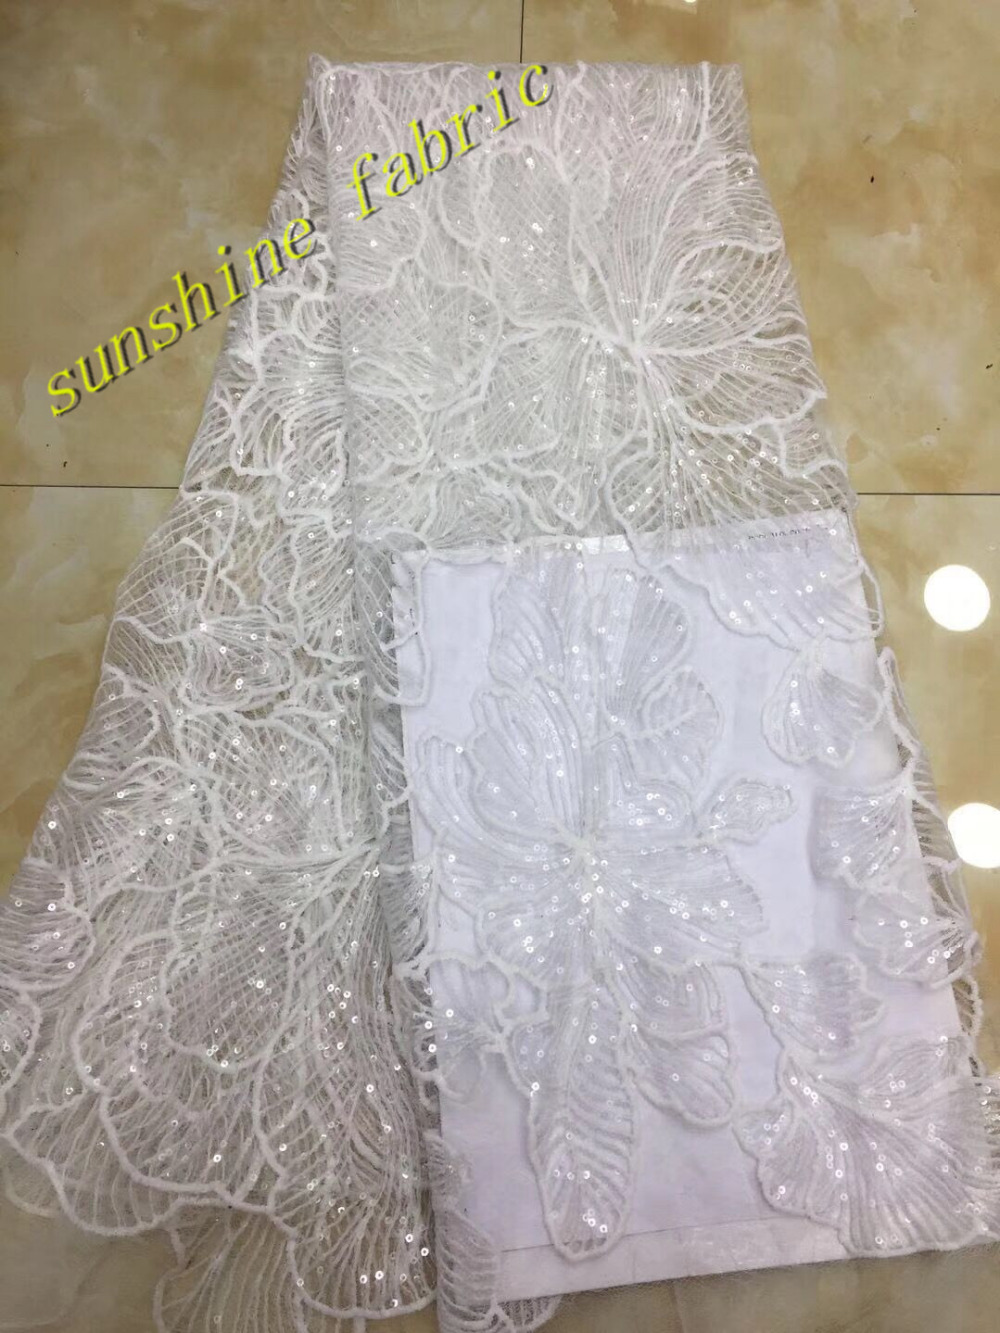 Nigerian lace fabrics Peach white sequin floral embroidery tulle mesh lace  for wedding evening dress party ship by DHL -in Lace from Home   Garden on  ... fa4169ff24e0